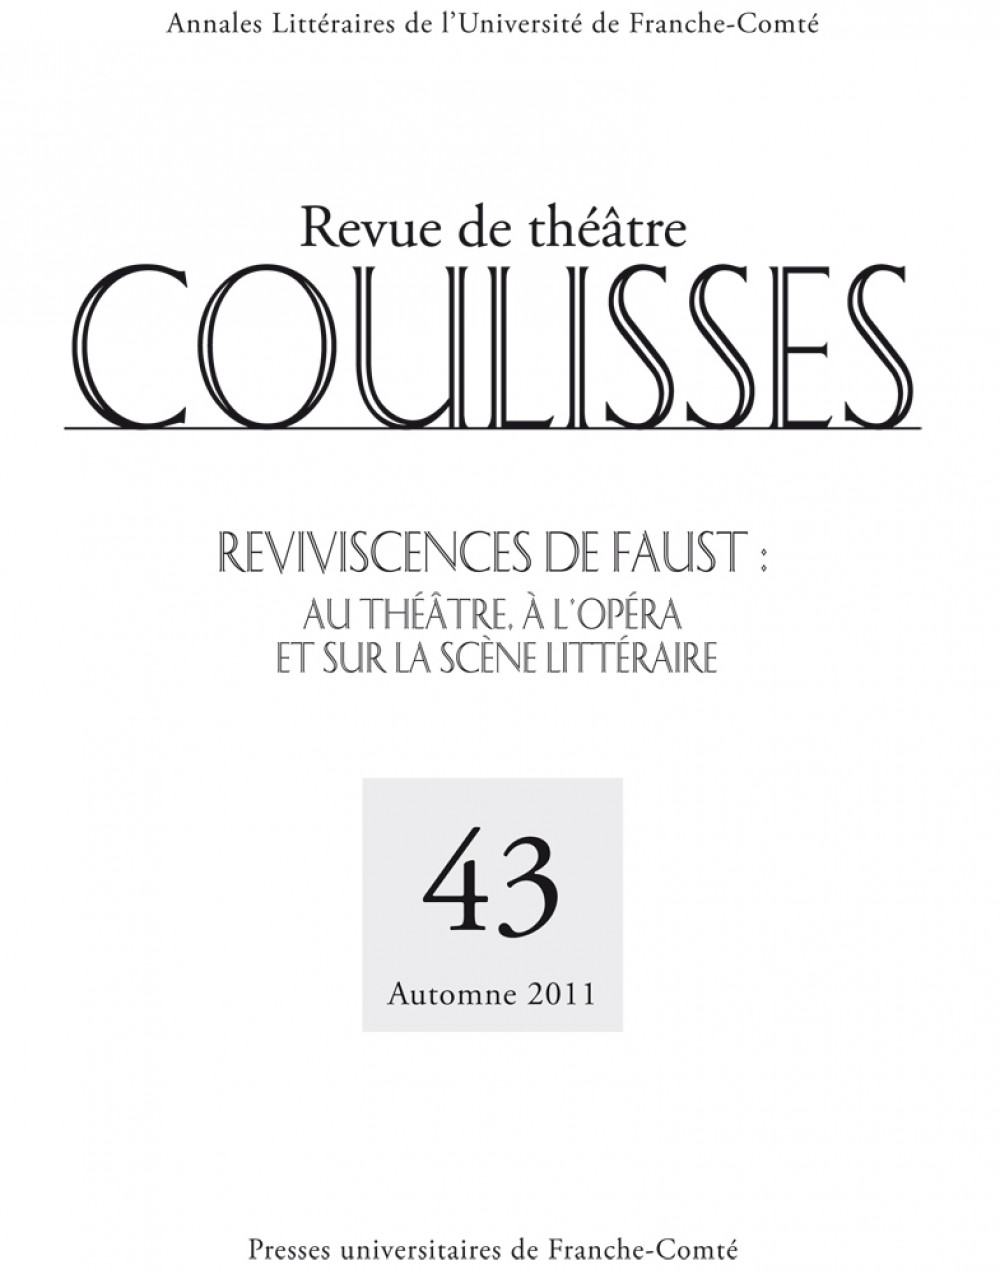 Coulisses 43